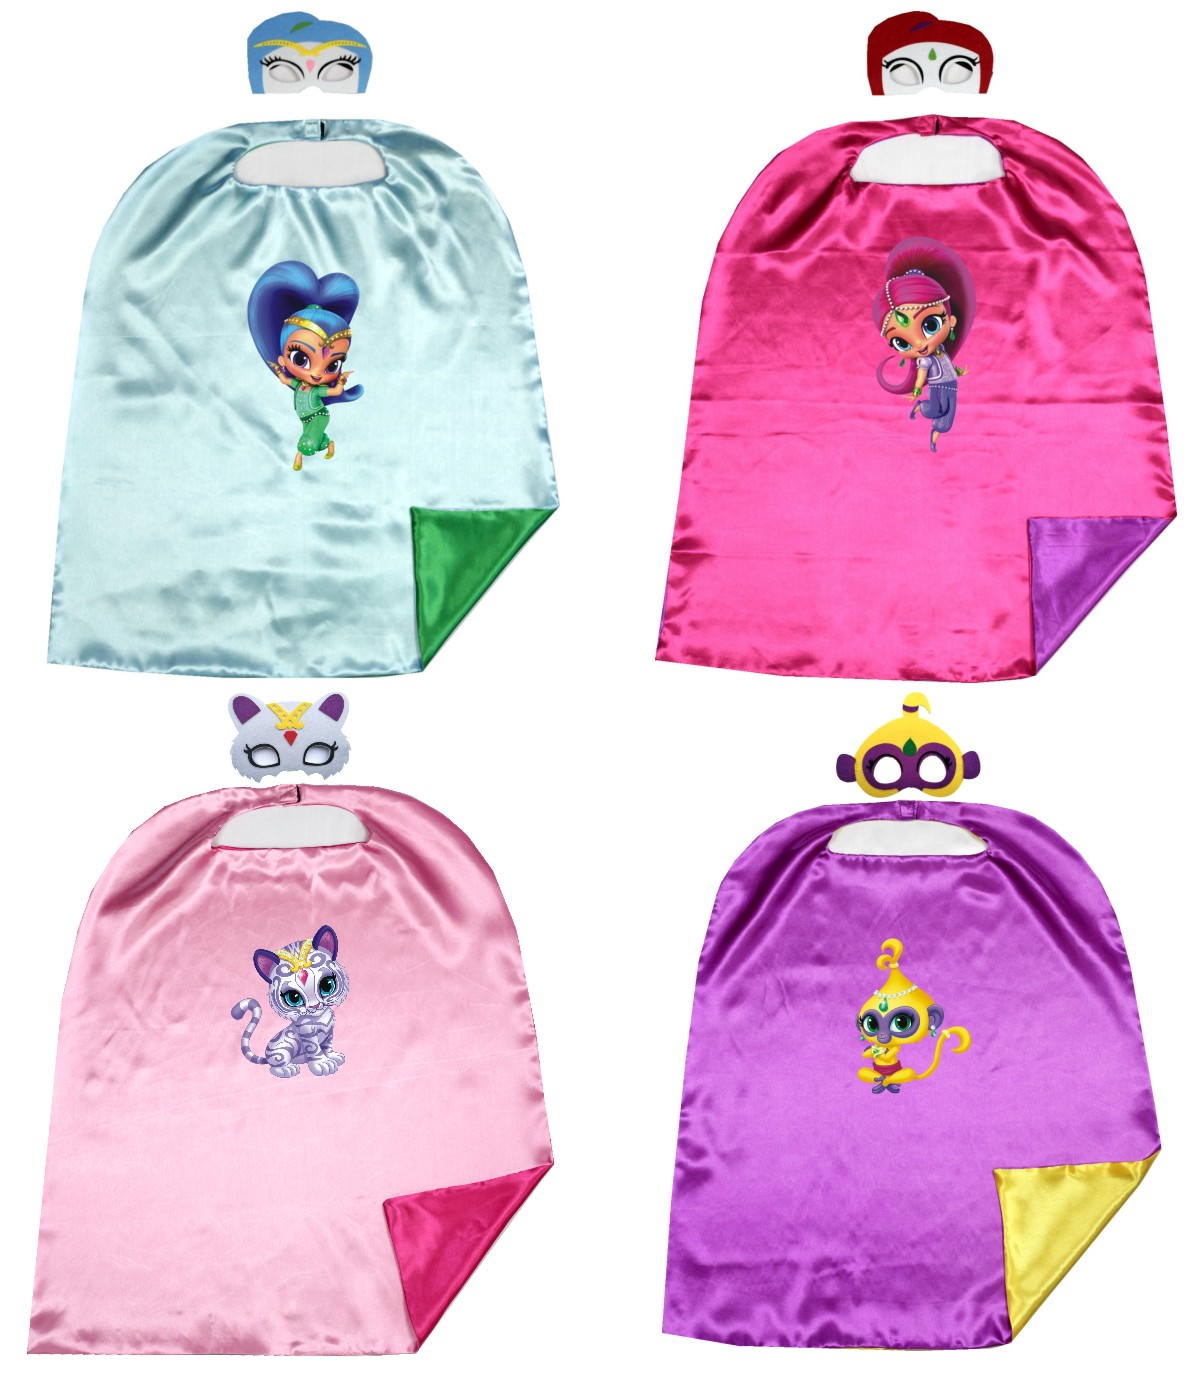 70 * 80cm 2layer shimmer & shine Capes maschere abbinabili CompleannoParty Favor Ispirato Dress Up Capes + Maschere